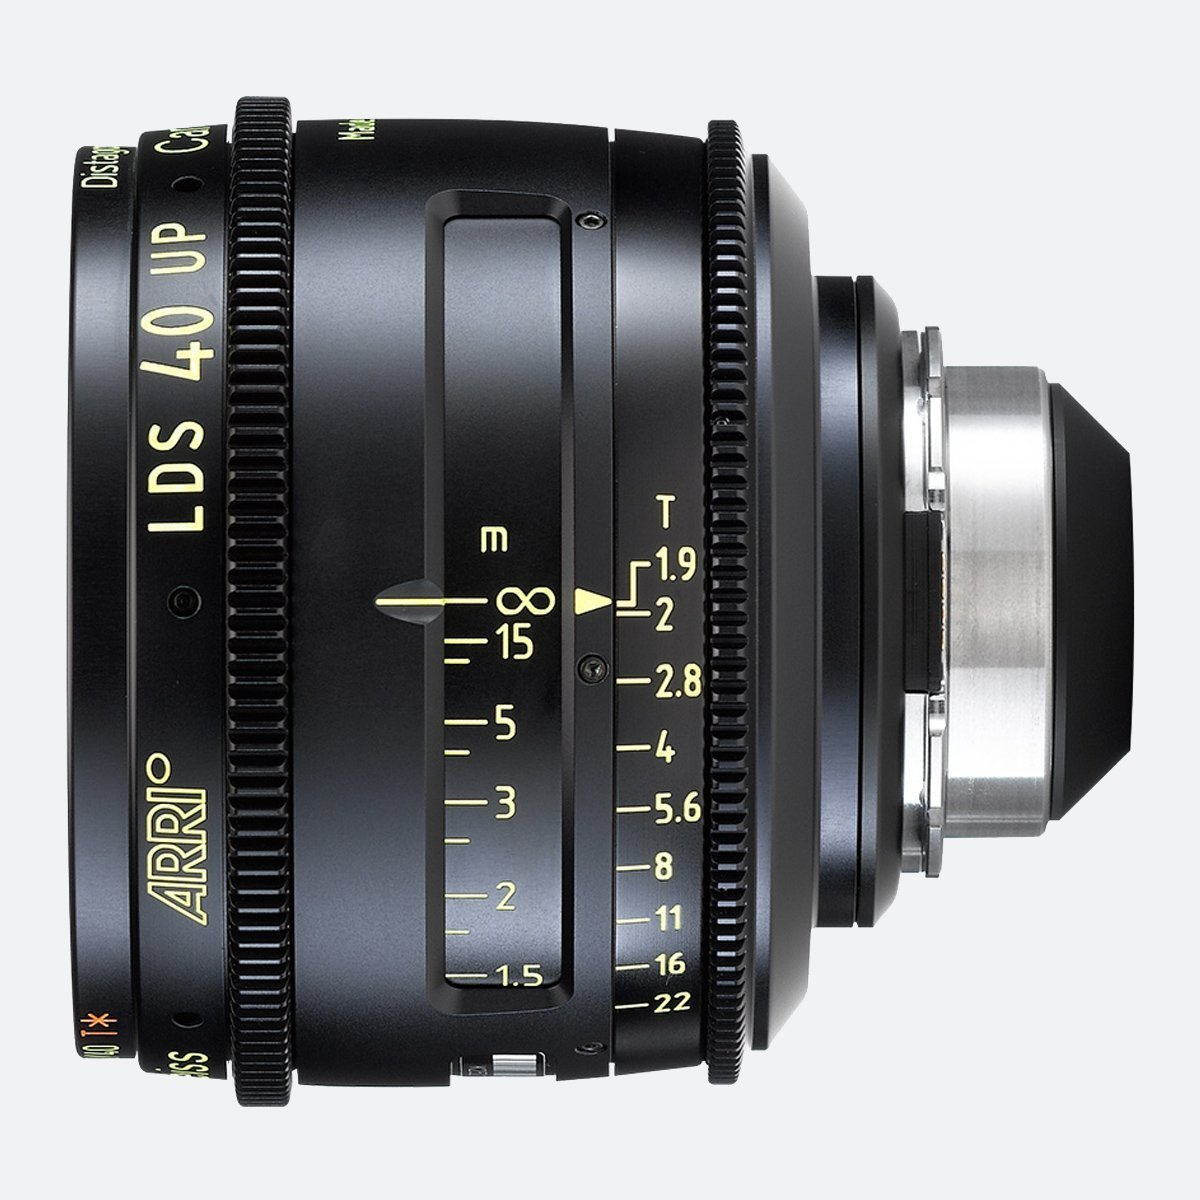 ARRI 40mm T1.9 LDS Ultra Prime Lens